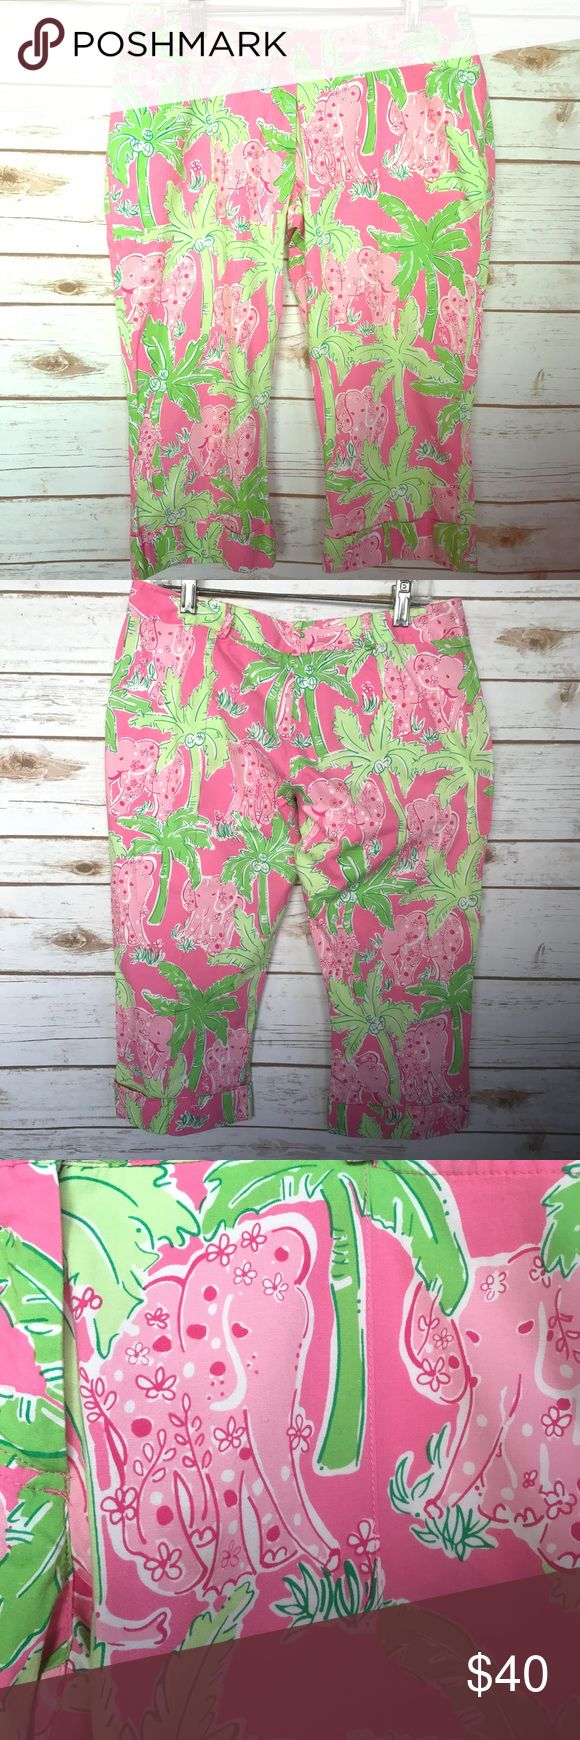 """Lilly Pulitzer Taboo Print Pink Elephant Capris 0P Lilly Pulitzer capri pants in the beloved """"Taboo"""" print featuring palm trees, pink elephants, and lovely flowers. Taboo prints was named one of the top 9 prints from Lilly Pulitzer. Capri length with cuffed bottom and flat front pockets. .*There are two button holes, and one of the buttons is missing as shown in the photos.* Previously owned in Very Good Used Condition.Size:0 Waist:14.5""""across laying flatLength:27 inches Rise: 6…"""